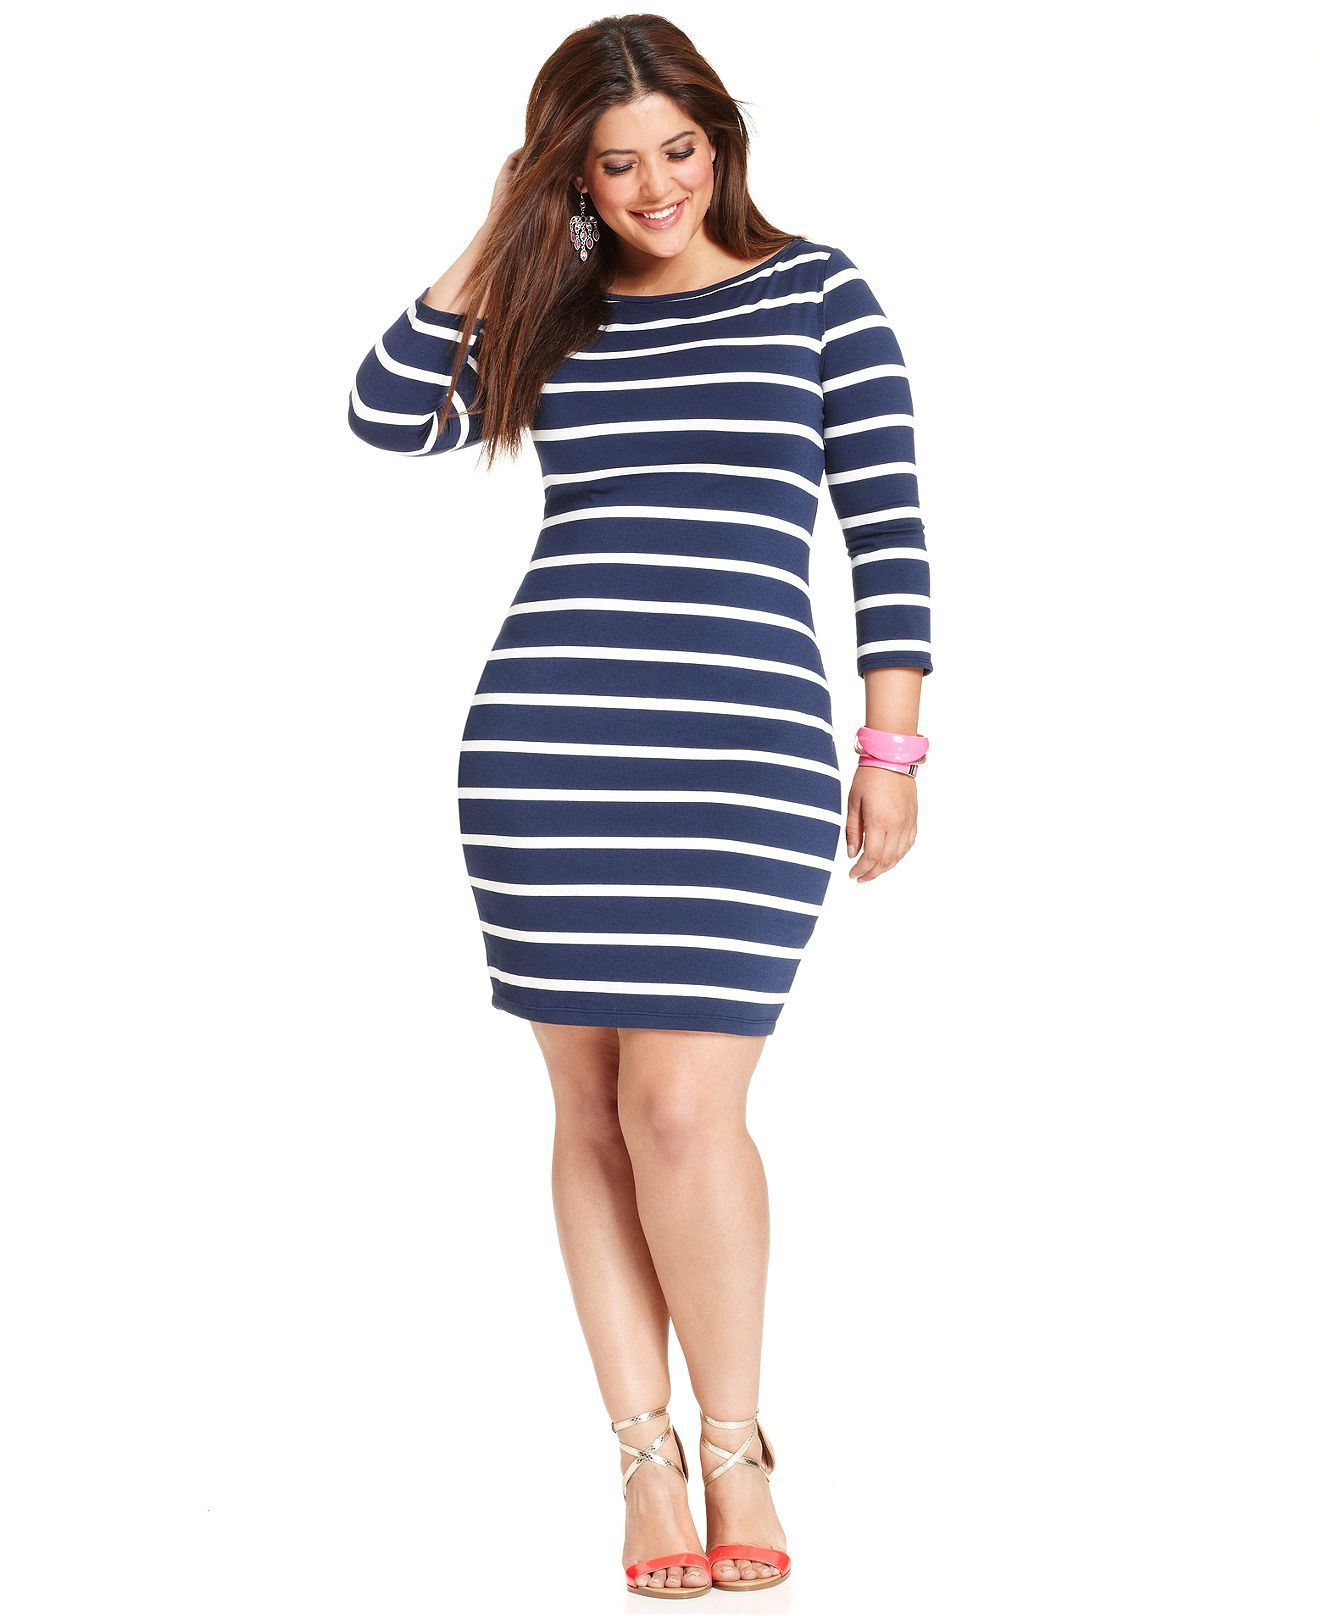 soprano plus size dress, three-quarter-sleeve striped bodycon